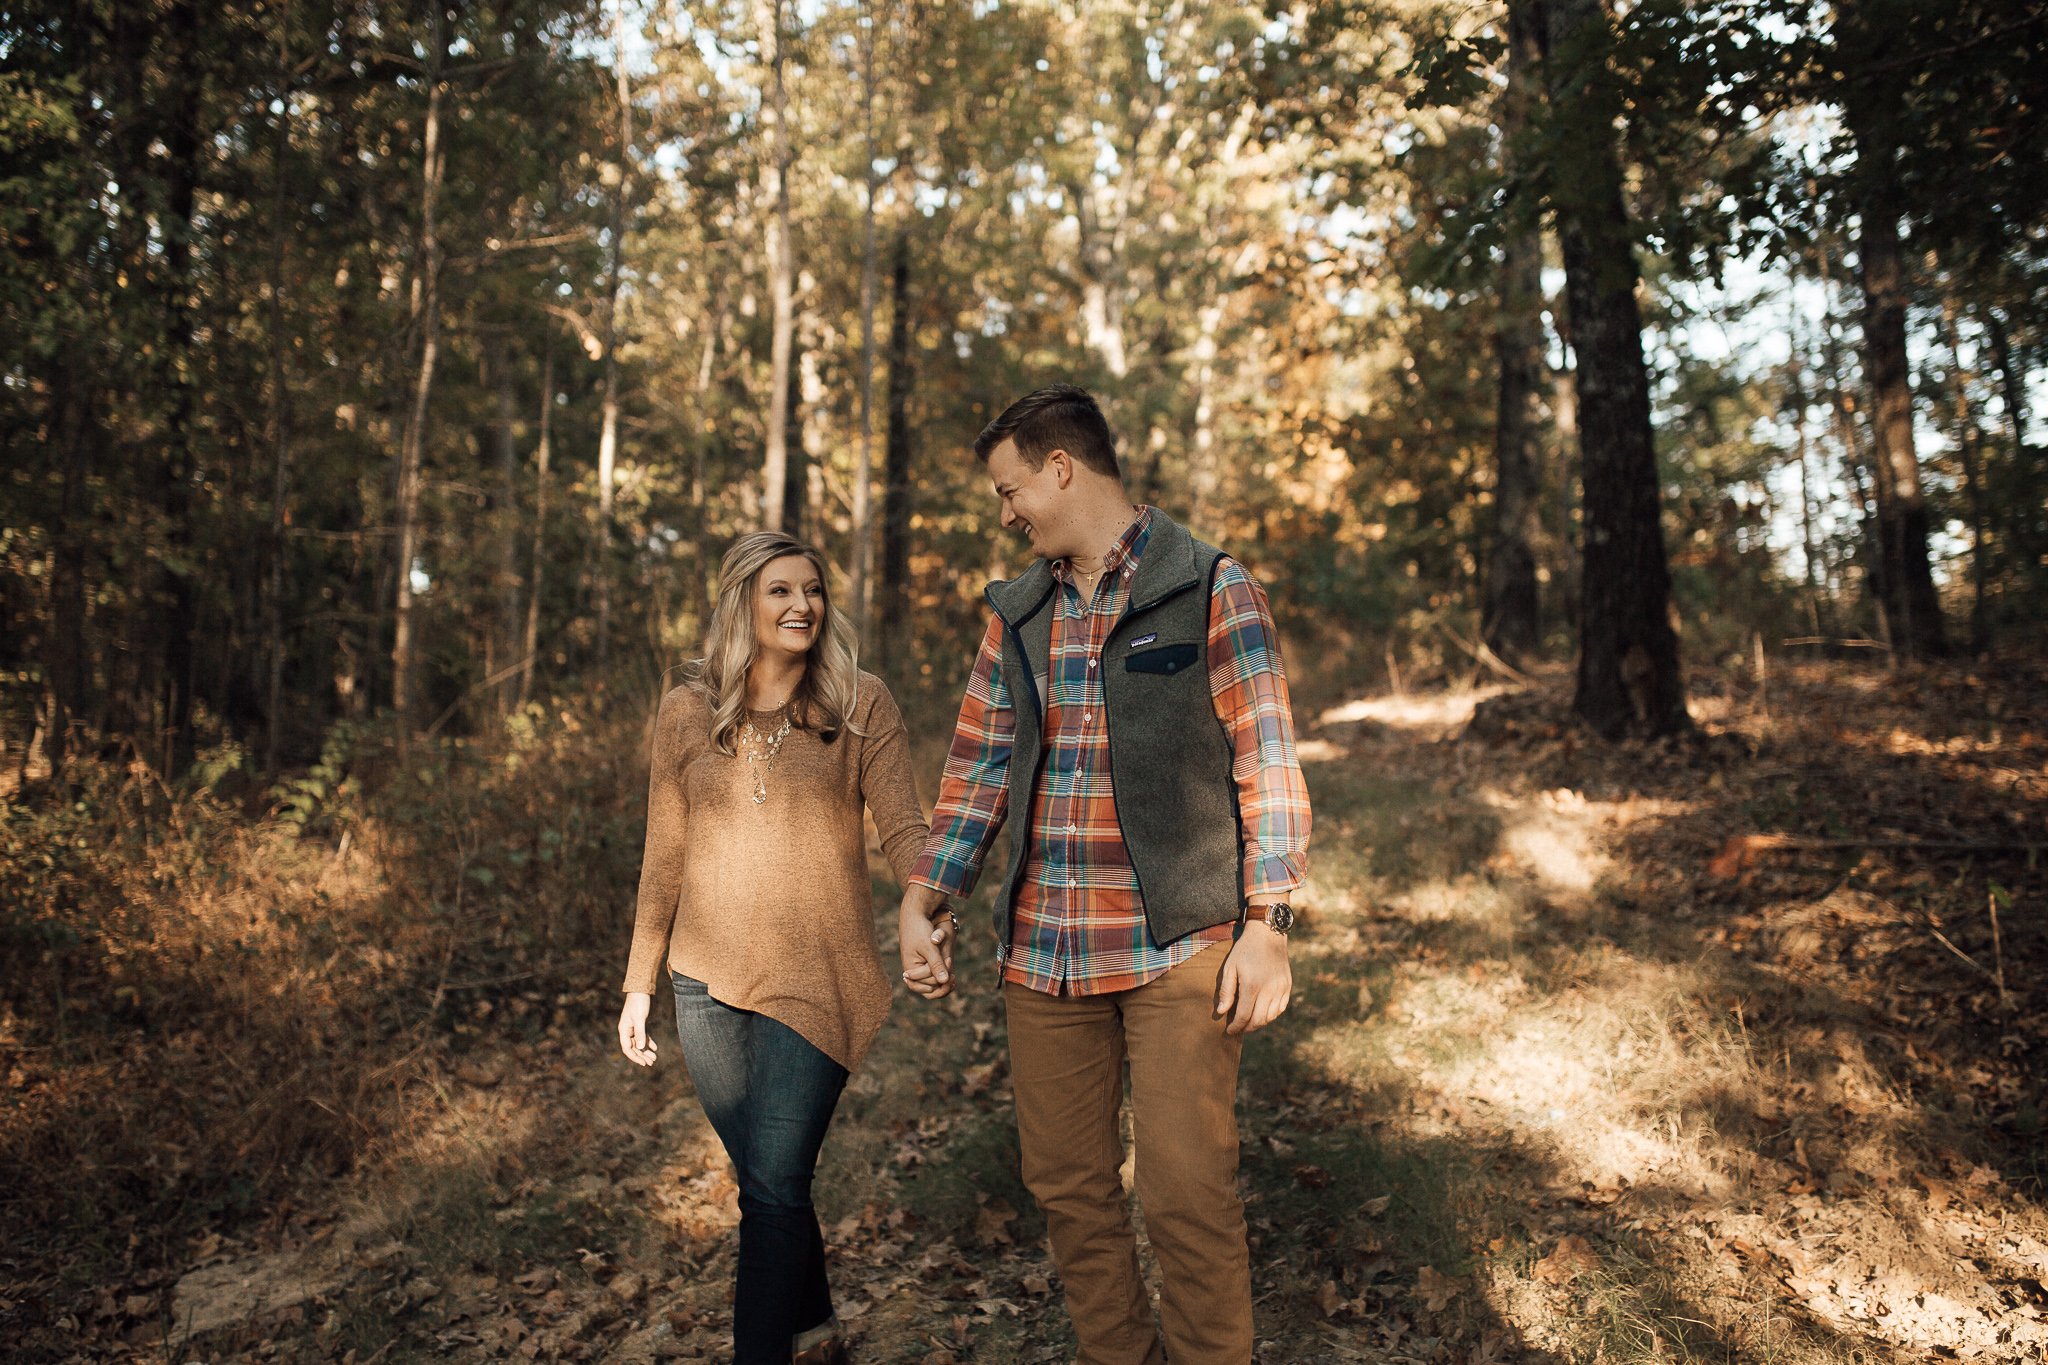 cassie-cook-photography-memphis-wedding-photographer-engagement-pictures-alexis-ryan-fall-pictures-hernando-ms-7.jpg